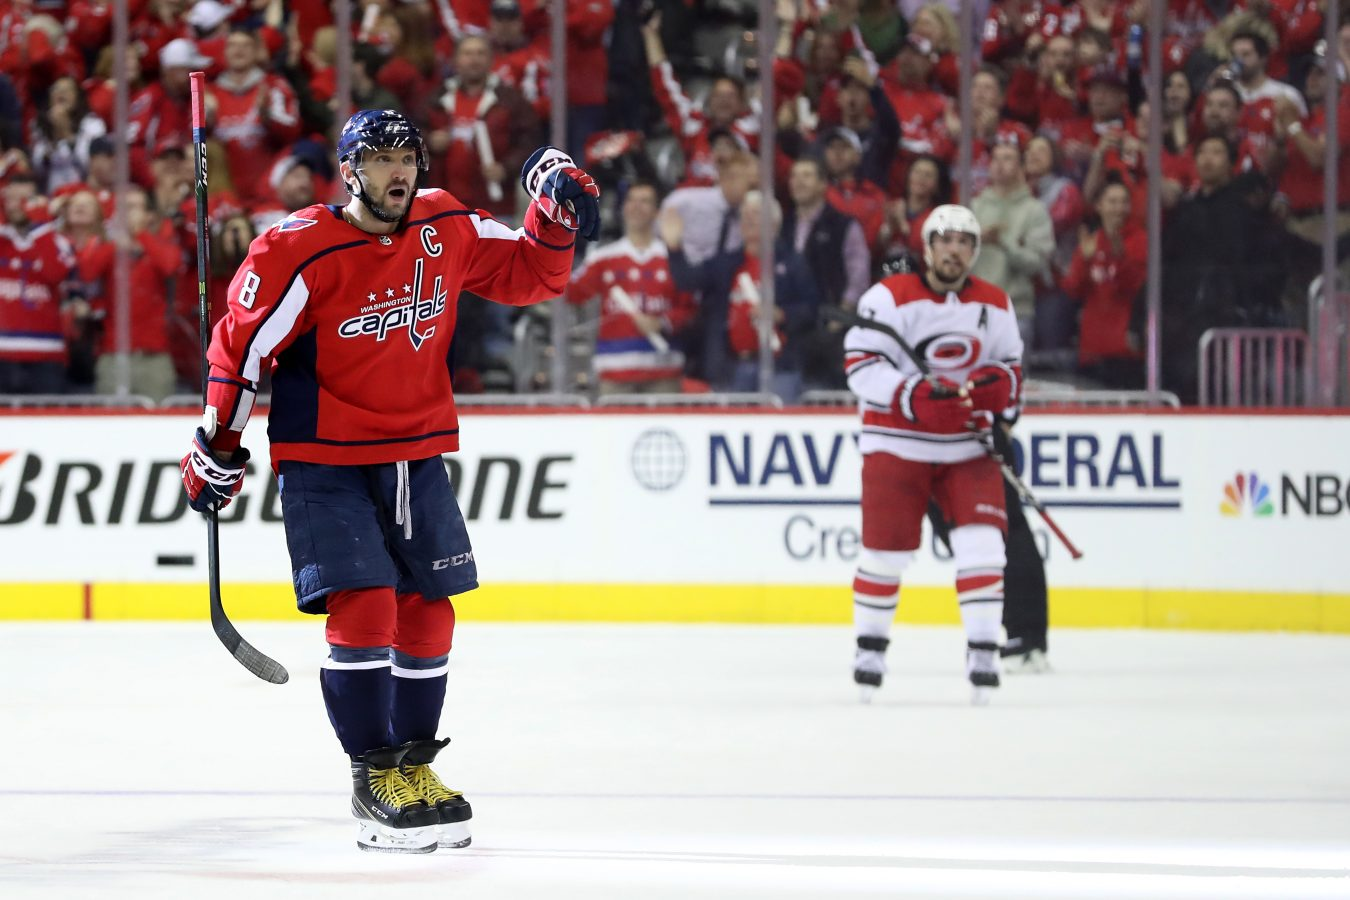 The Capitals Set The Tone Physically In Game 5 And Will Look For